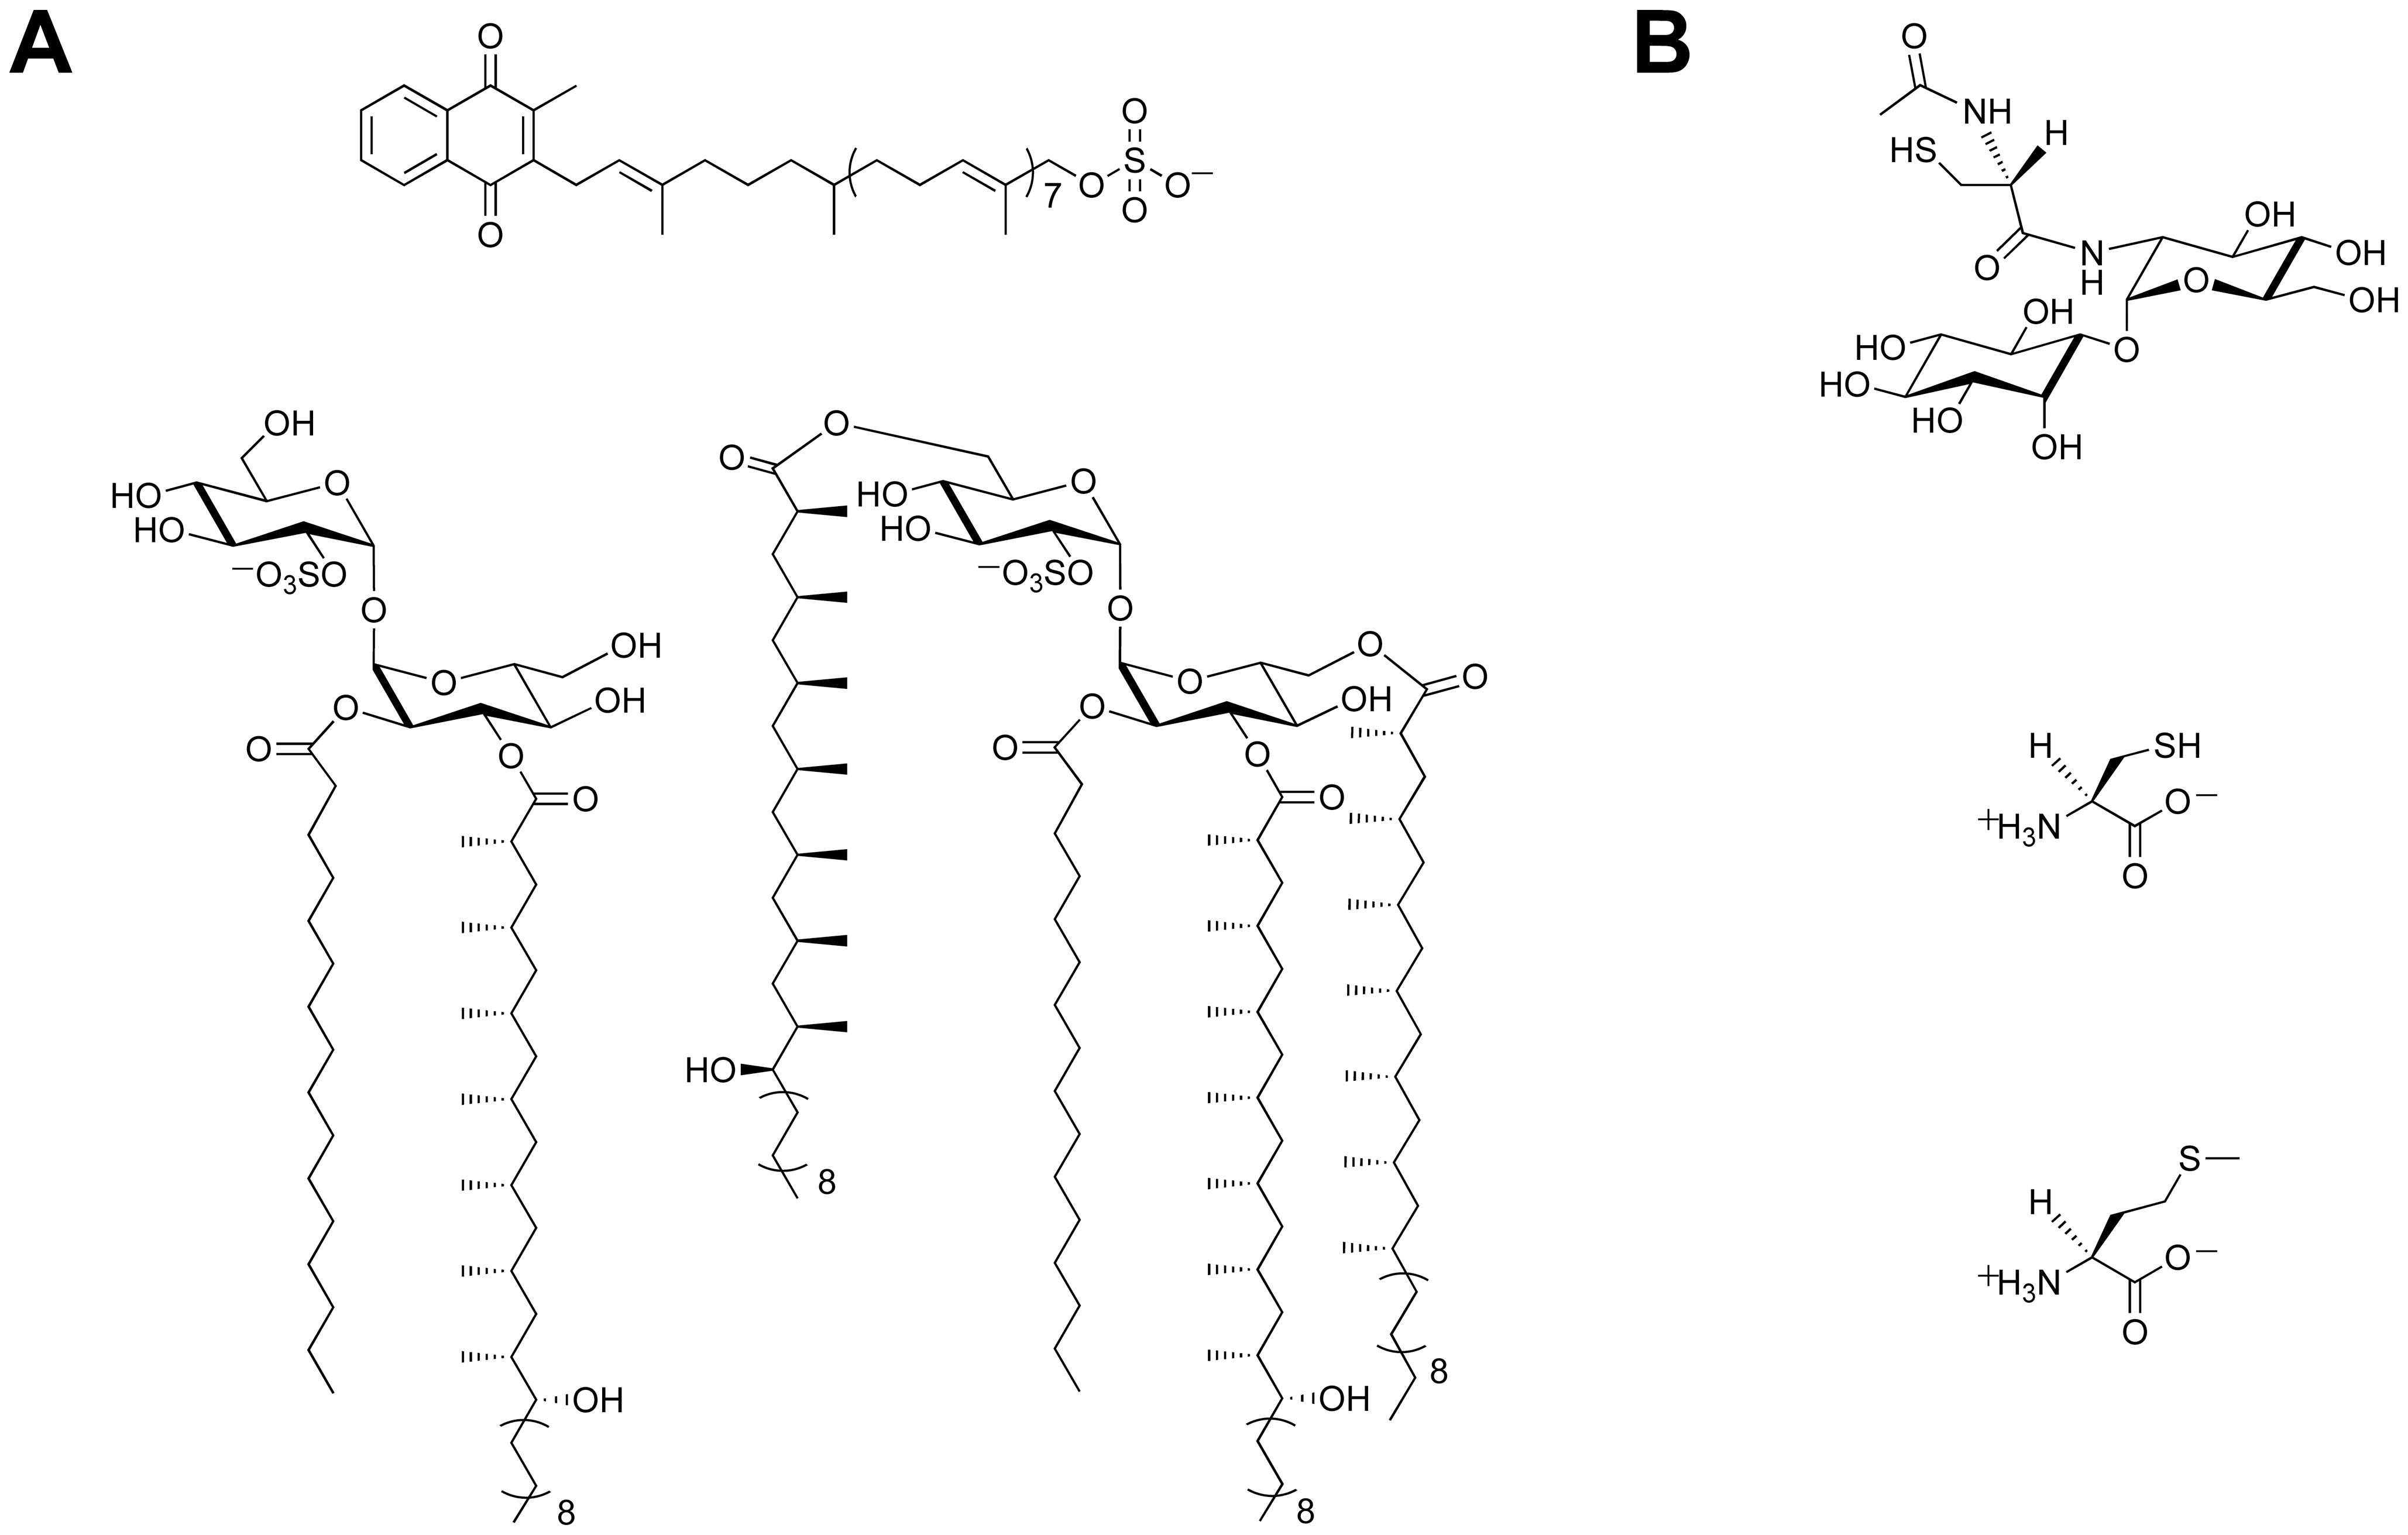 Sulfur-containing metabolites from <i>Mtb</i>.